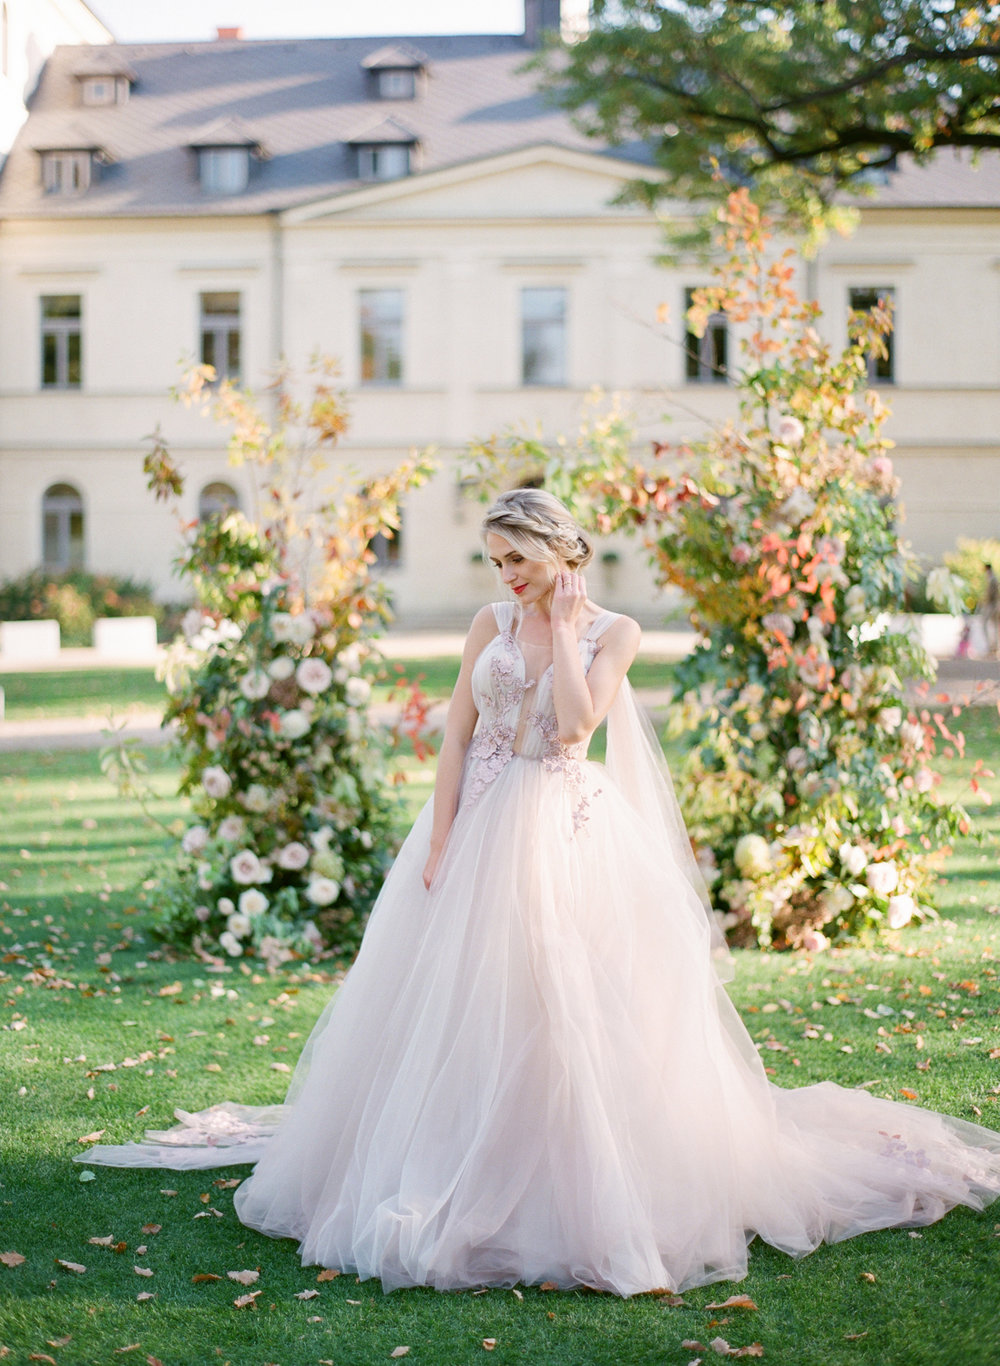 lake como wedding photographer nikol bodnarova photography film wedding photographer